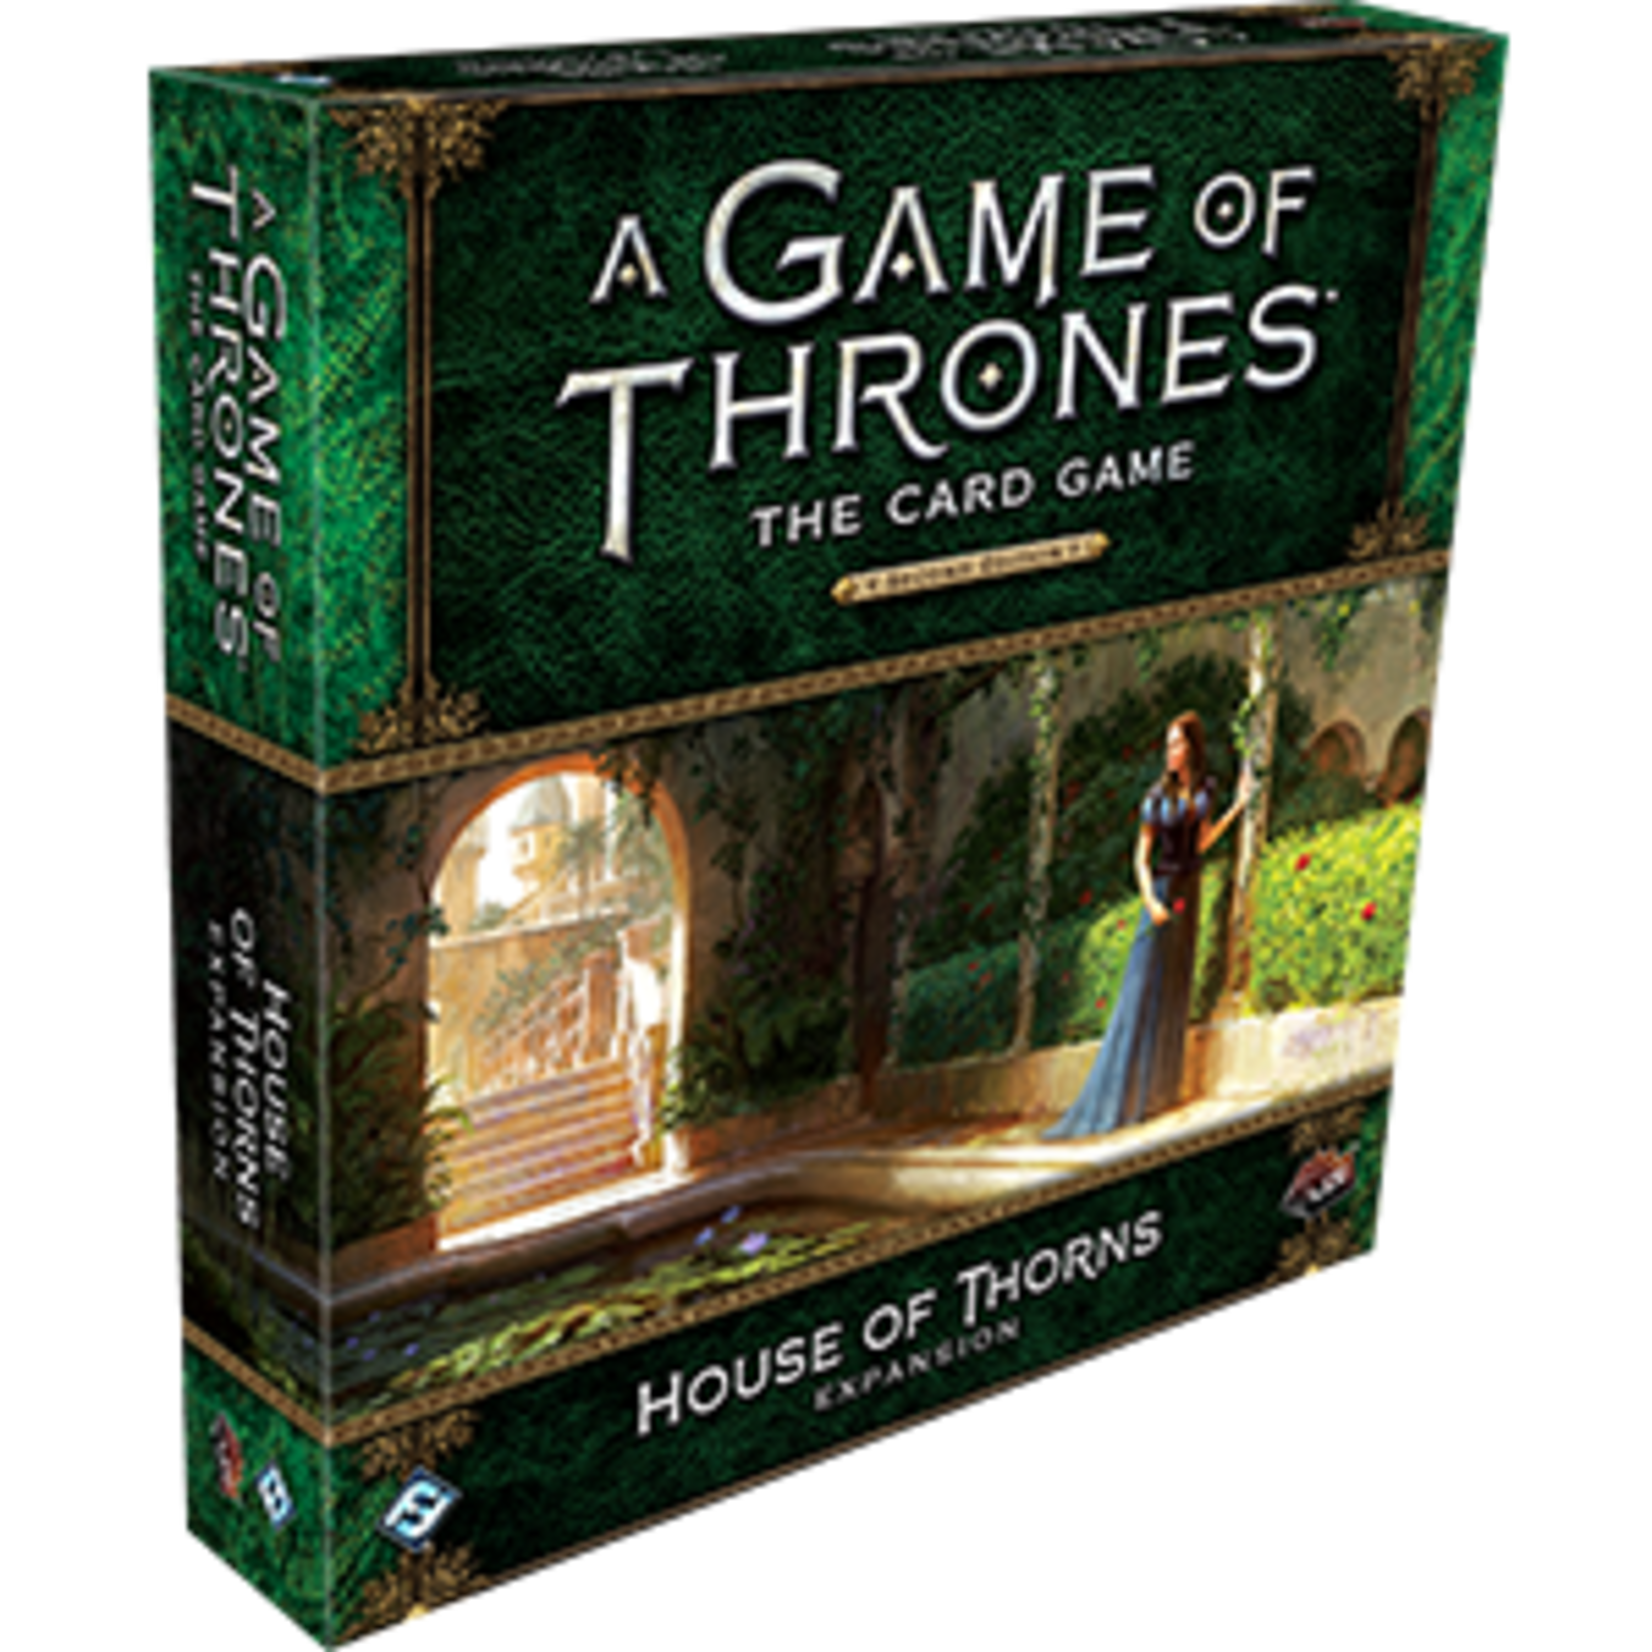 Fantasy Flight Games A Game of Thrones Card Game 2nd Edition: House of Thorns Deluxe Expansion